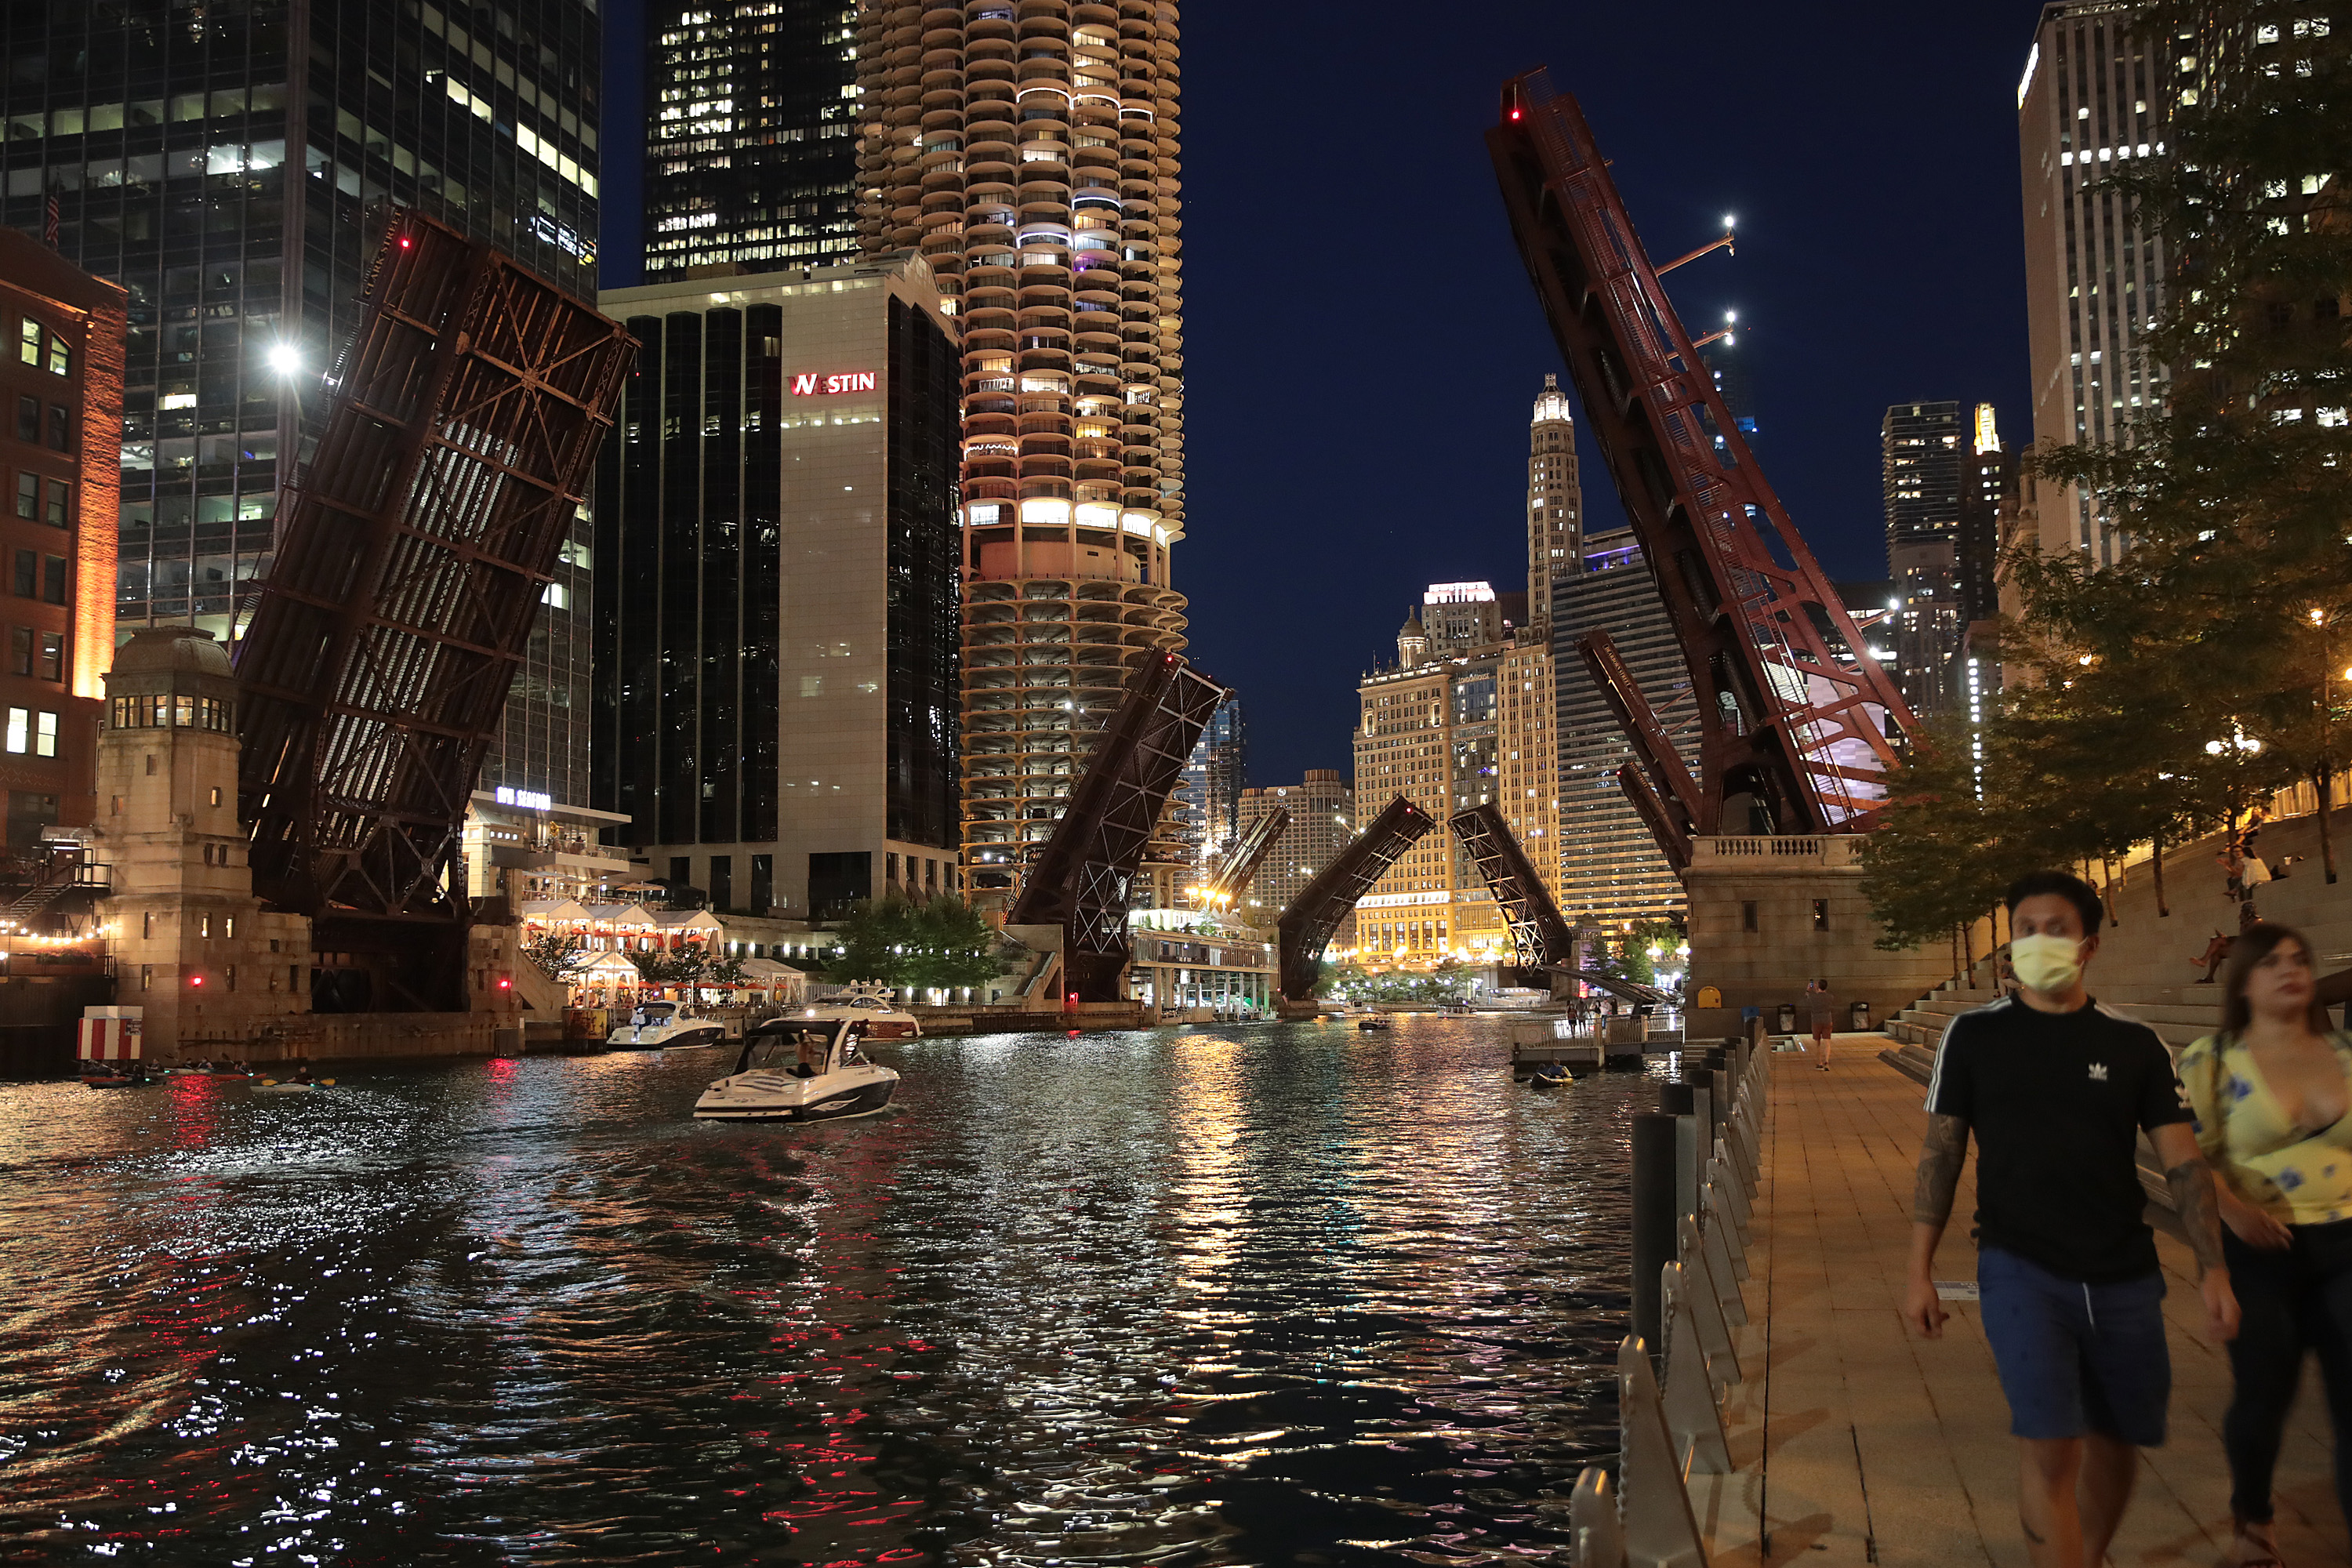 CHICAGO, ILLINOIS - AUGUST 12: Bridges across the Chicago river are raised to control access into downtown after widespread looting broke out early Monday in the city on August 12, 2020 in Chicago, Illinois. City officials say they will continue raise the bridges and take other measures to control access to and from downtown at least through the weekend. (Photo by Scott Olson/Getty Images)